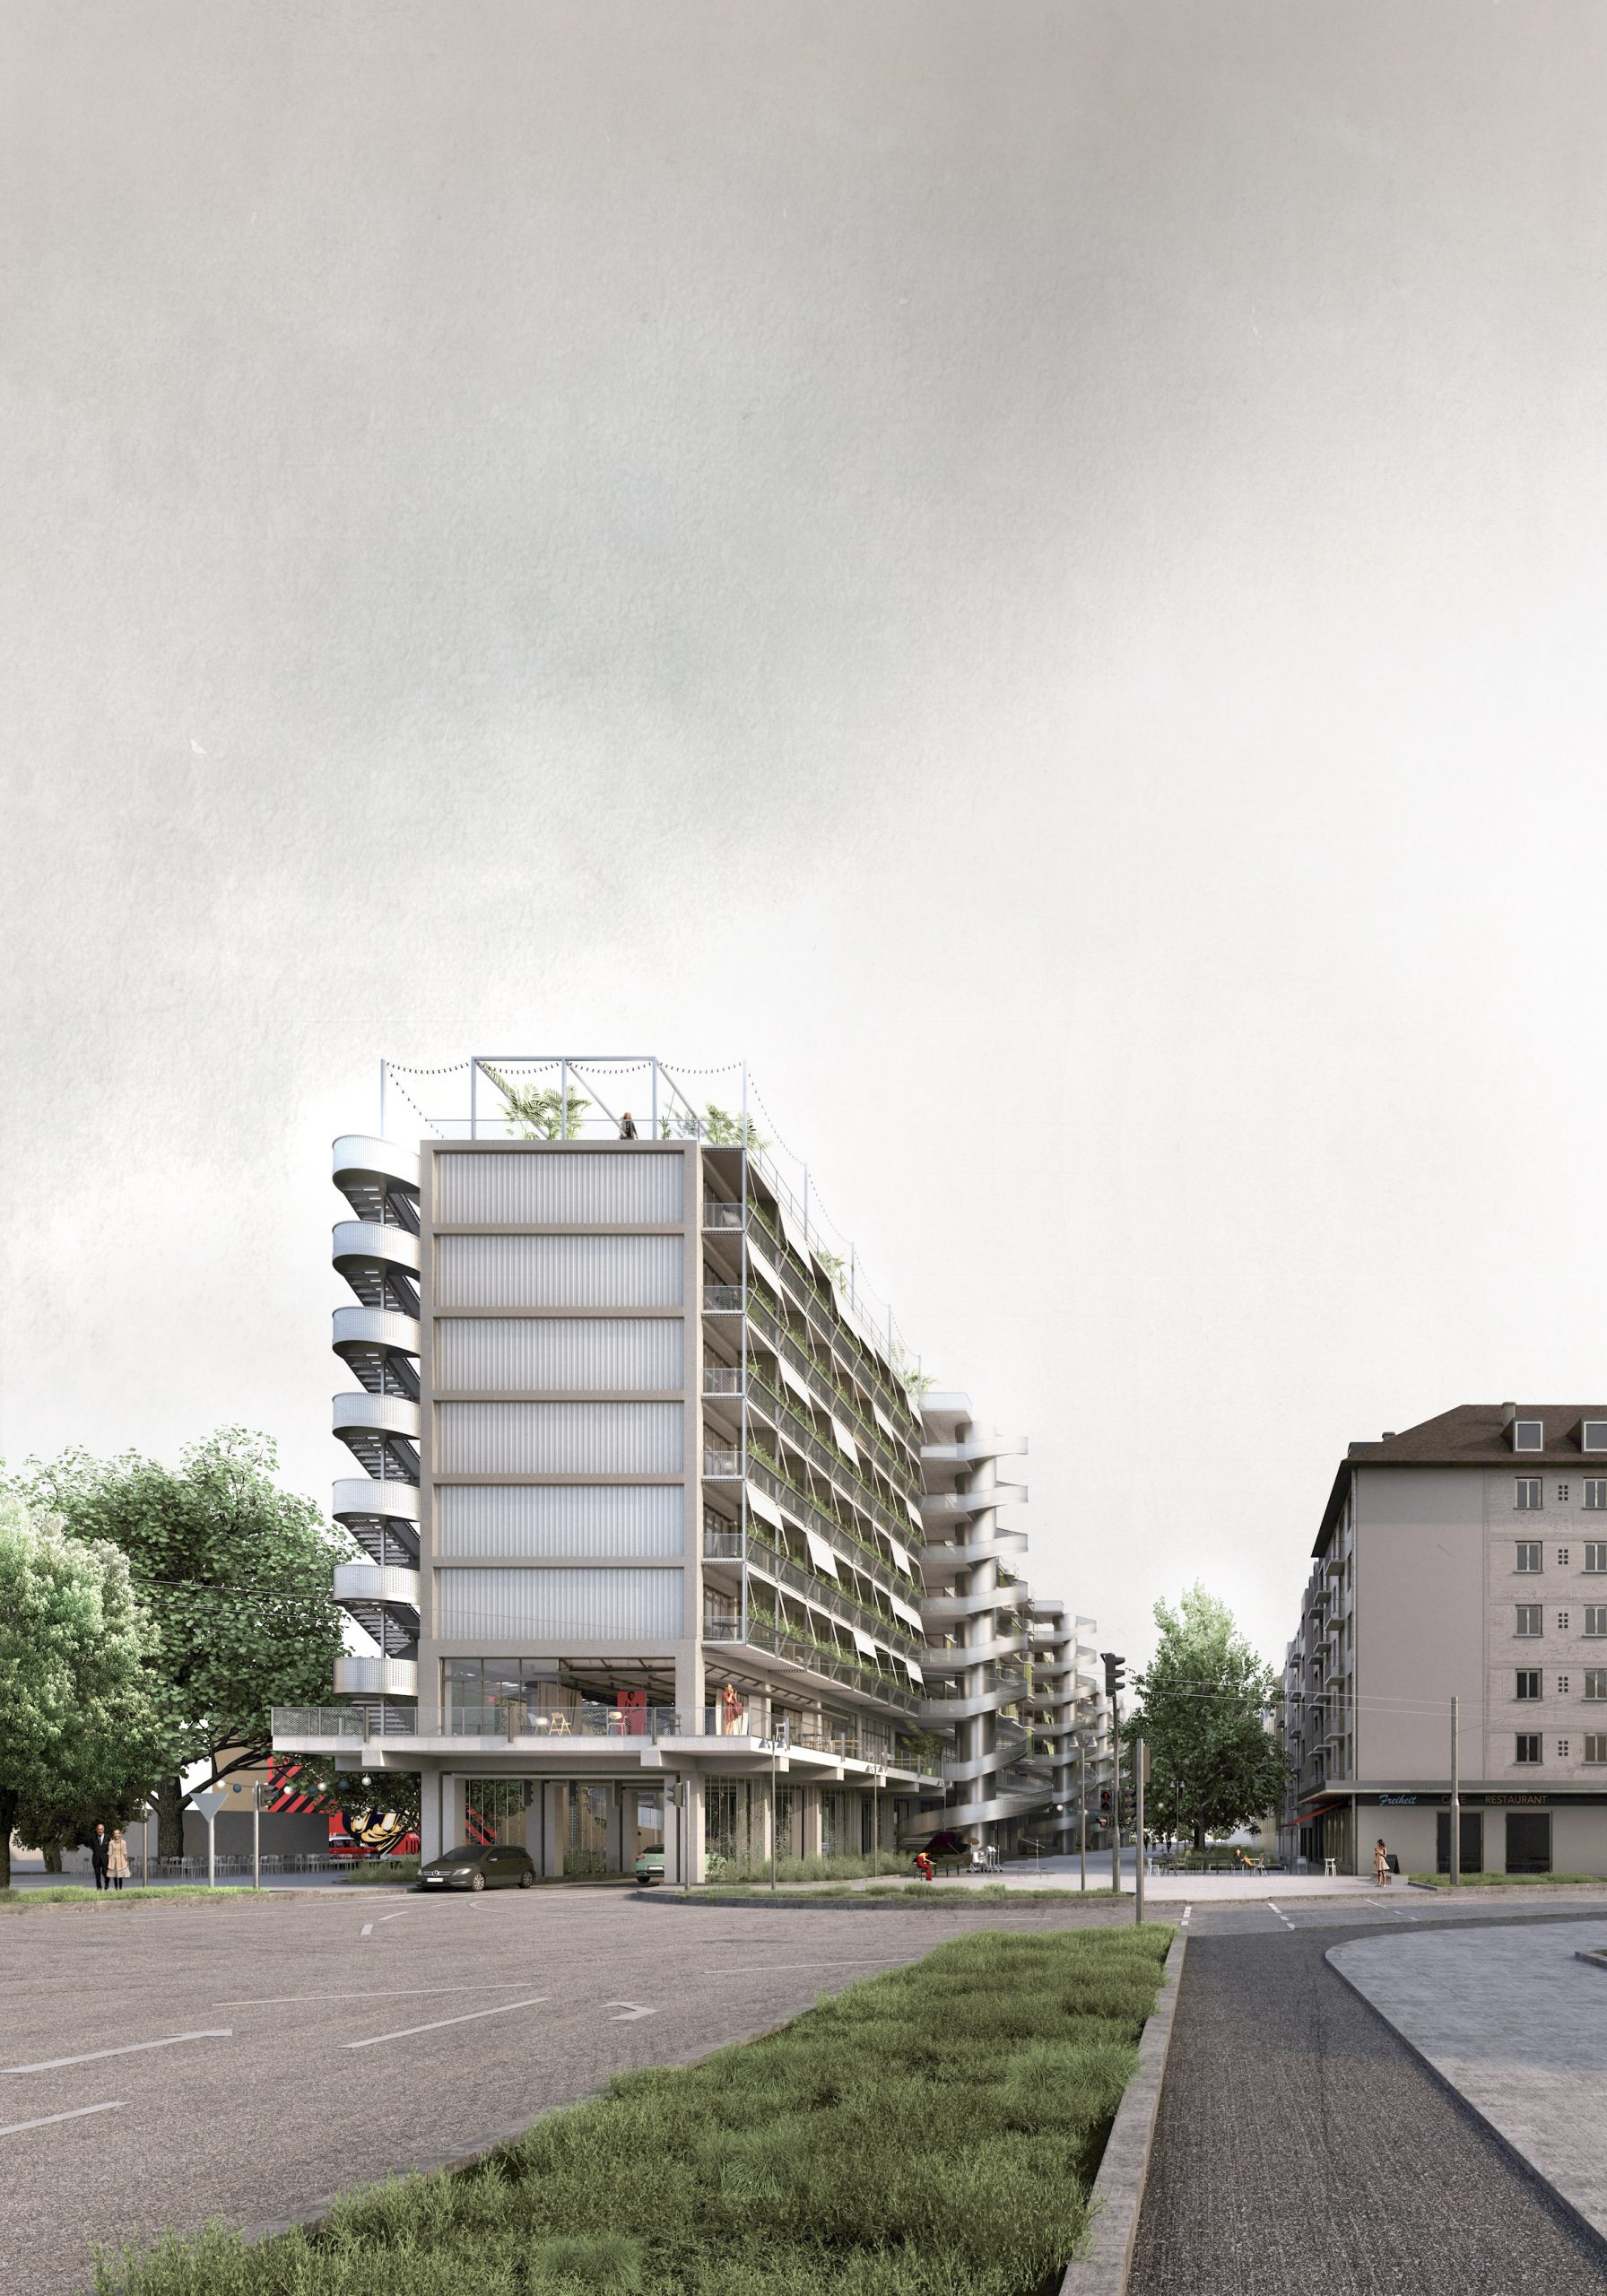 Technical University Munich students share adaptive reuse projects